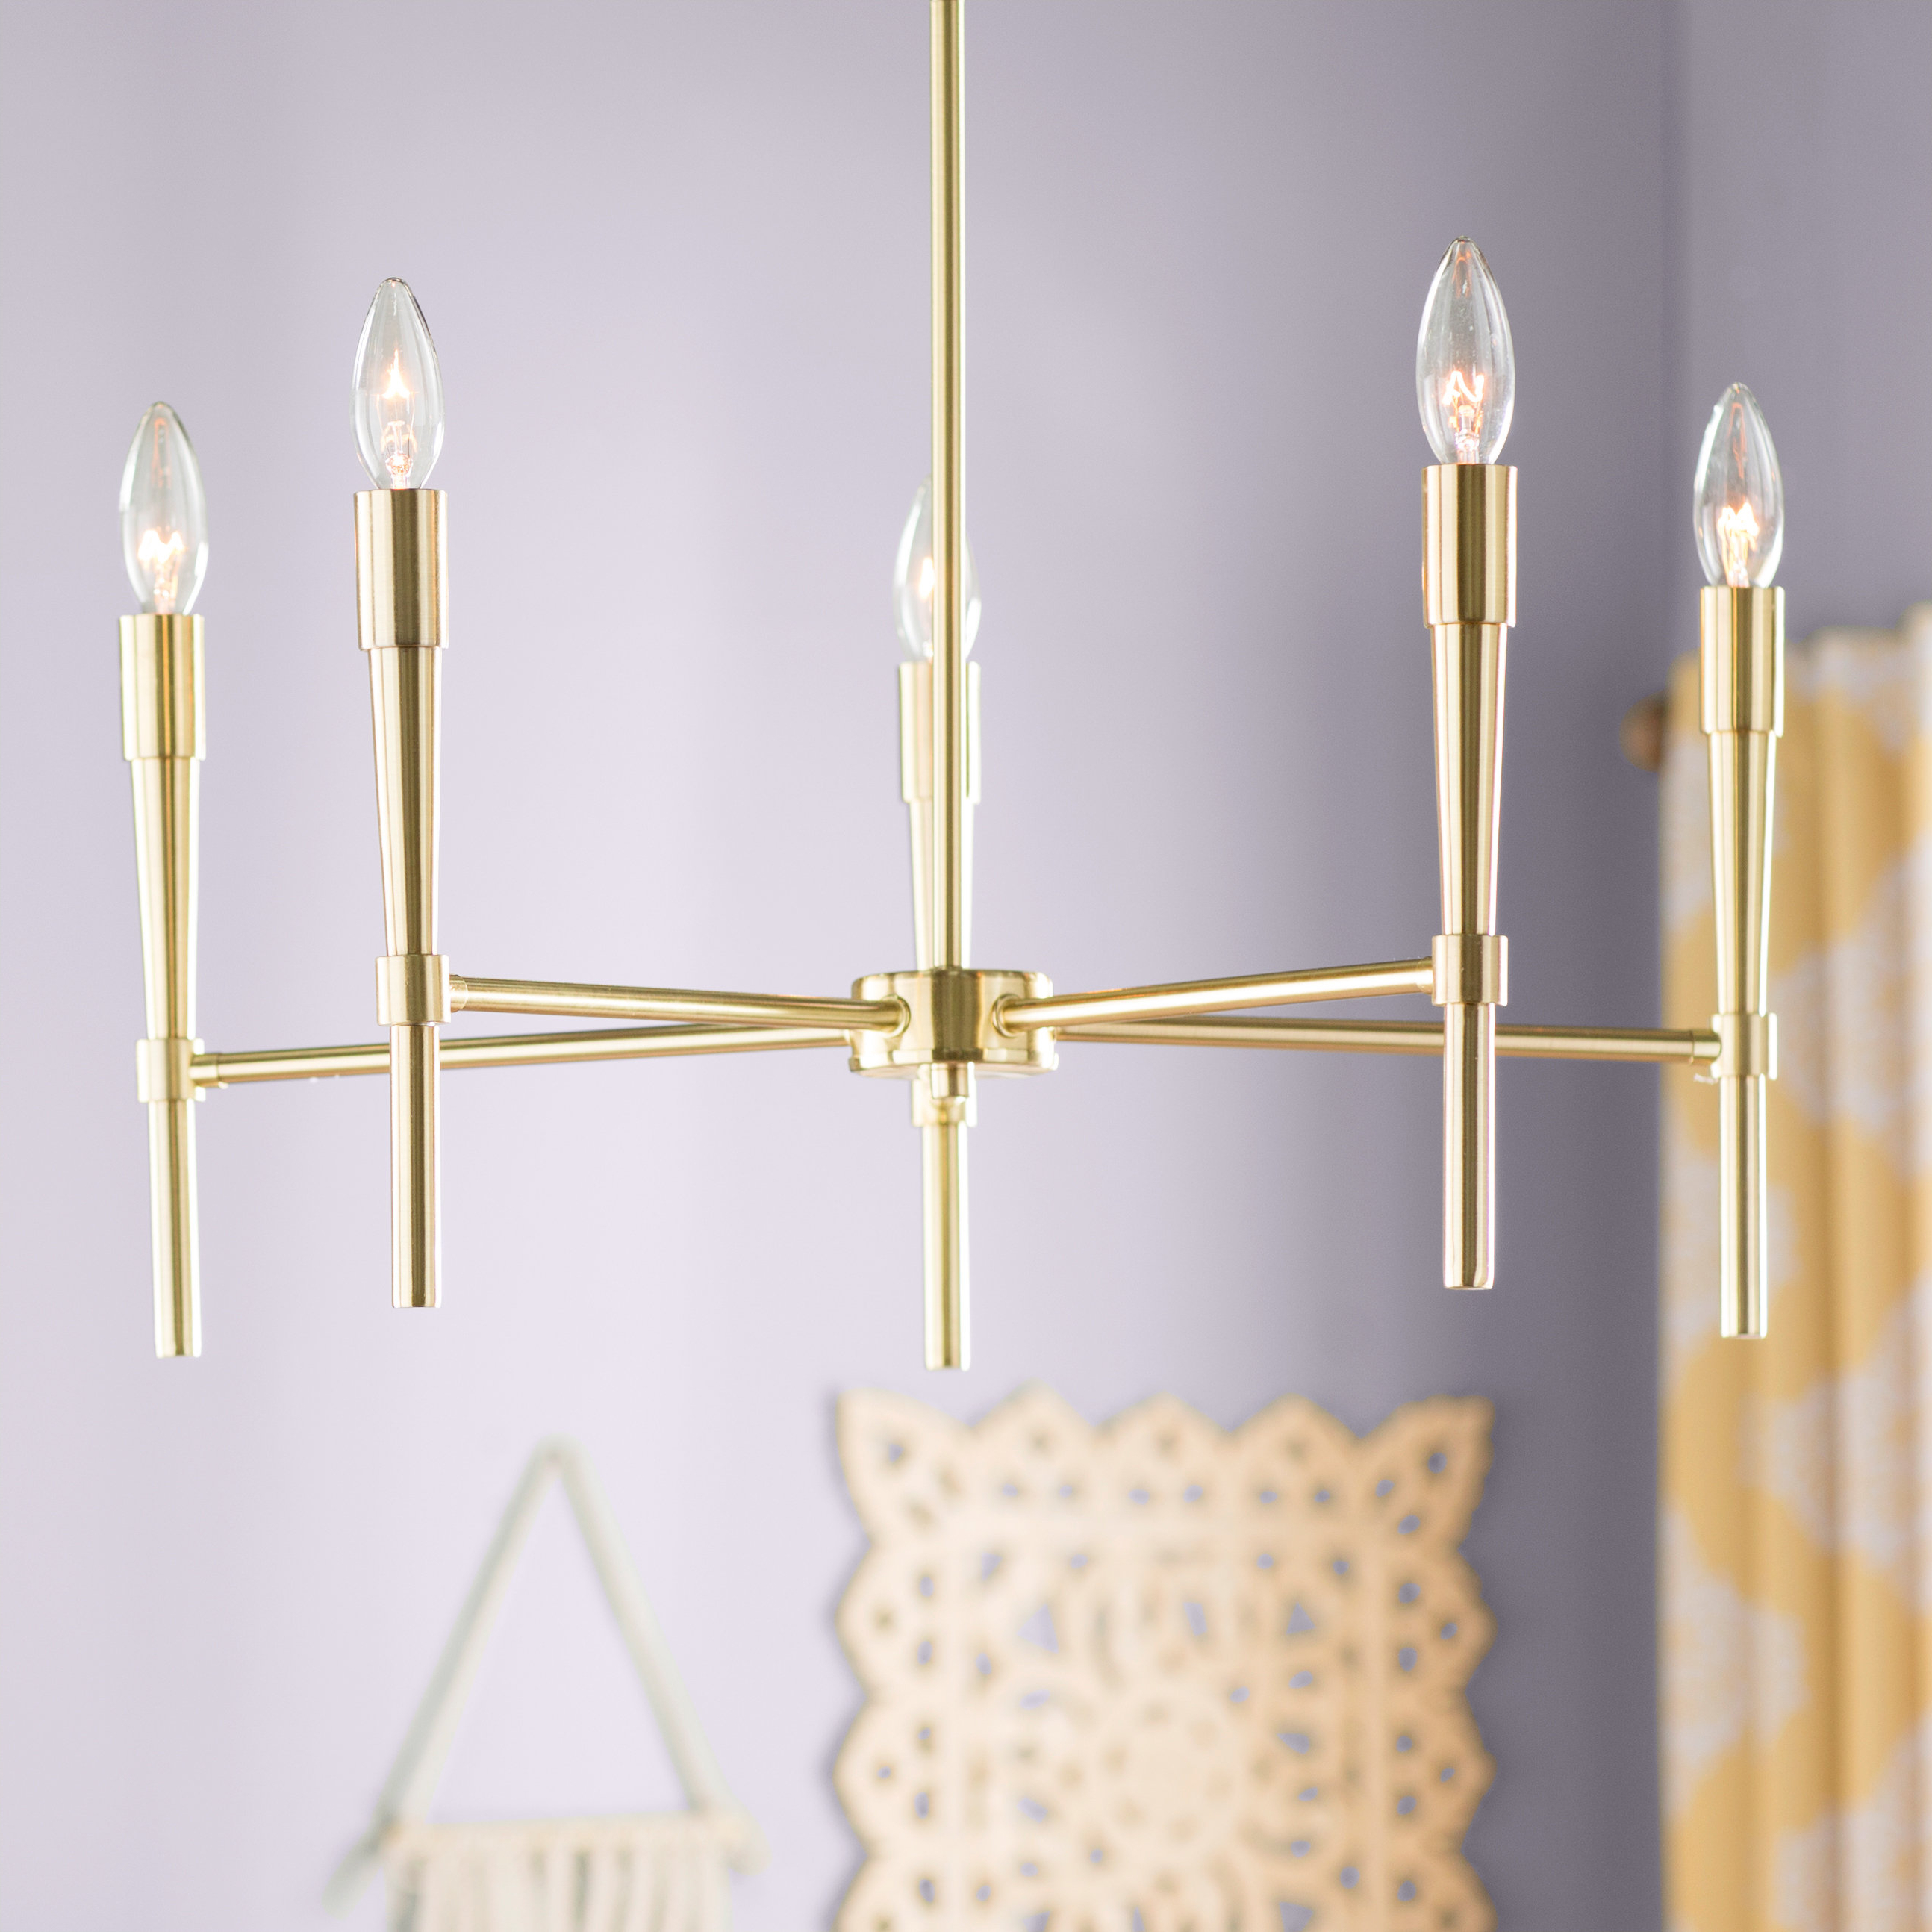 Tabit 5 Light Geometric Chandeliers Inside Most Recent Ashleigh 5 Light Candle Style Chandelier (View 11 of 20)